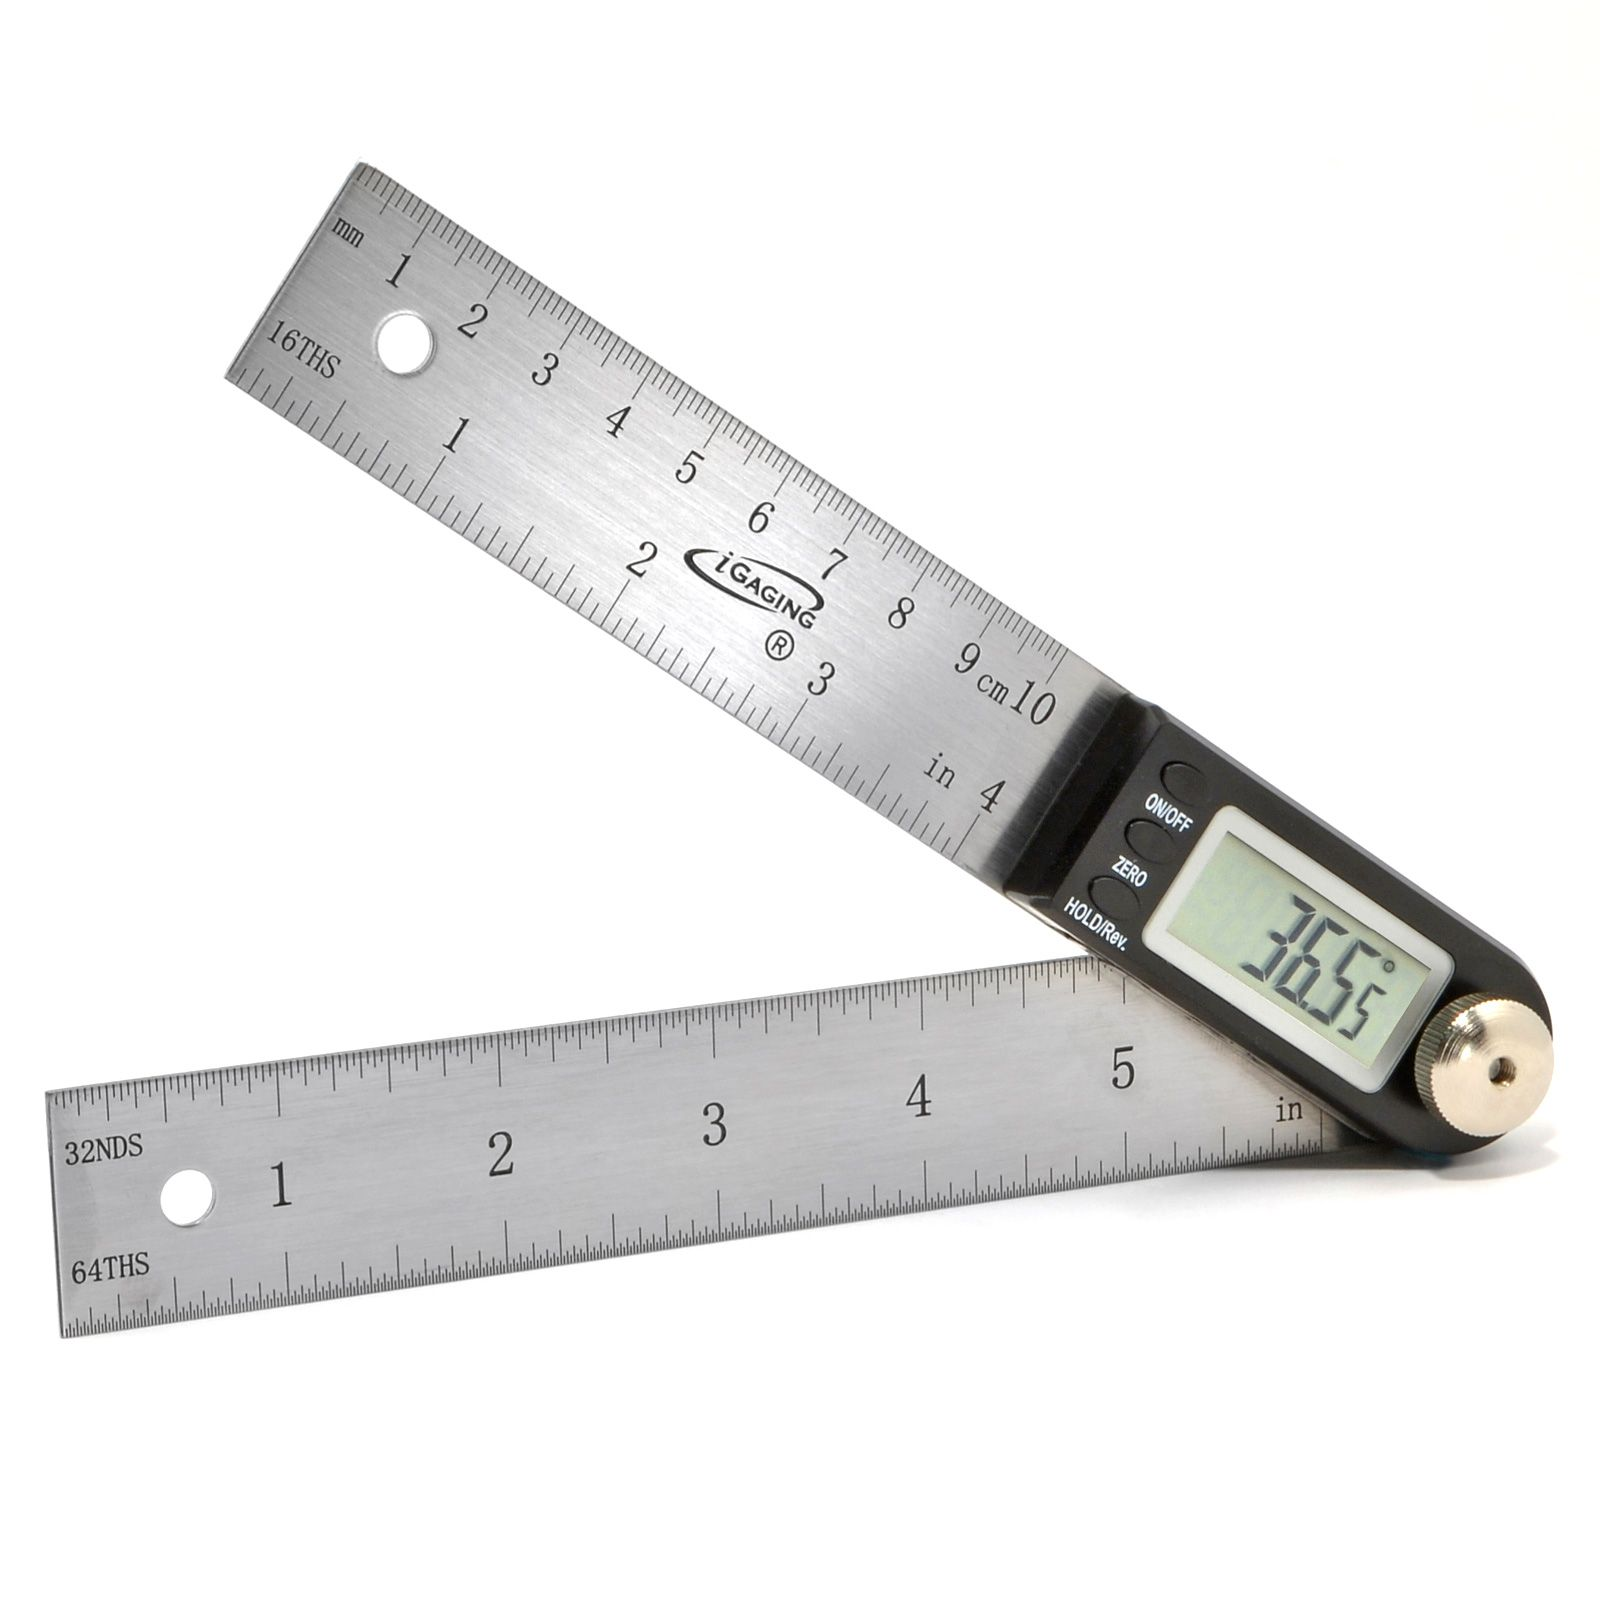 Digital Angle Gauge 7 Inch Digital Angle Gauge Angle Measuring Tool Digital